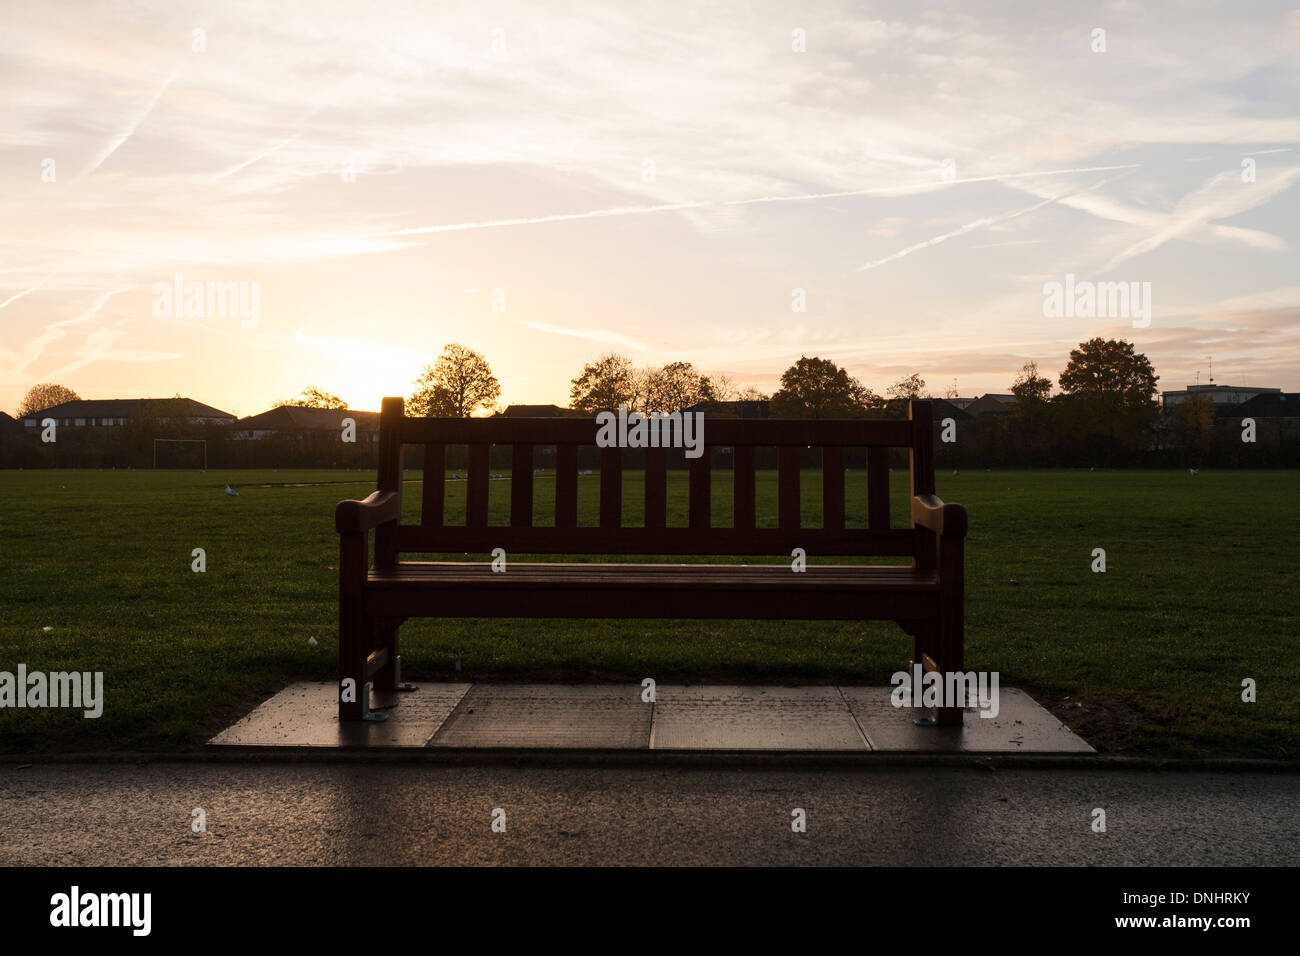 A bench alongside a path in the Gibbons Recreation Grounds in Willesden, London. - Stock Image